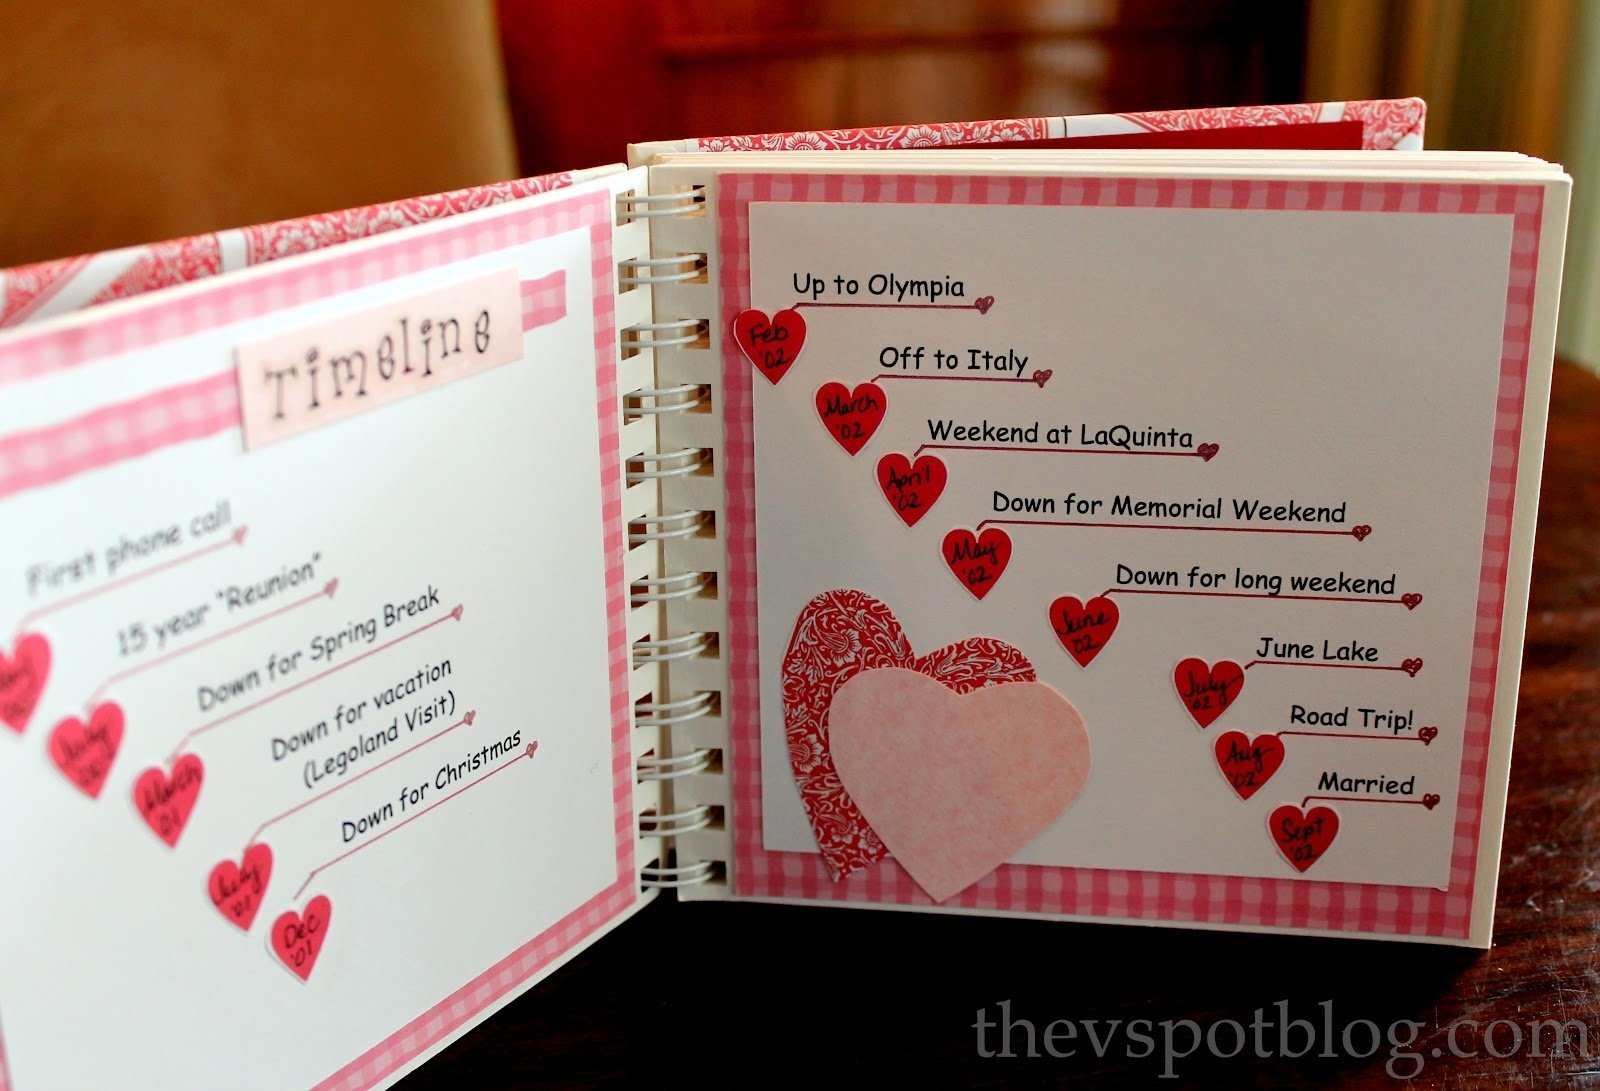 10 Cute V Day Gift Ideas For Him day gifts boyfriend homemade valentine new creative dma homes 89237 1 2020